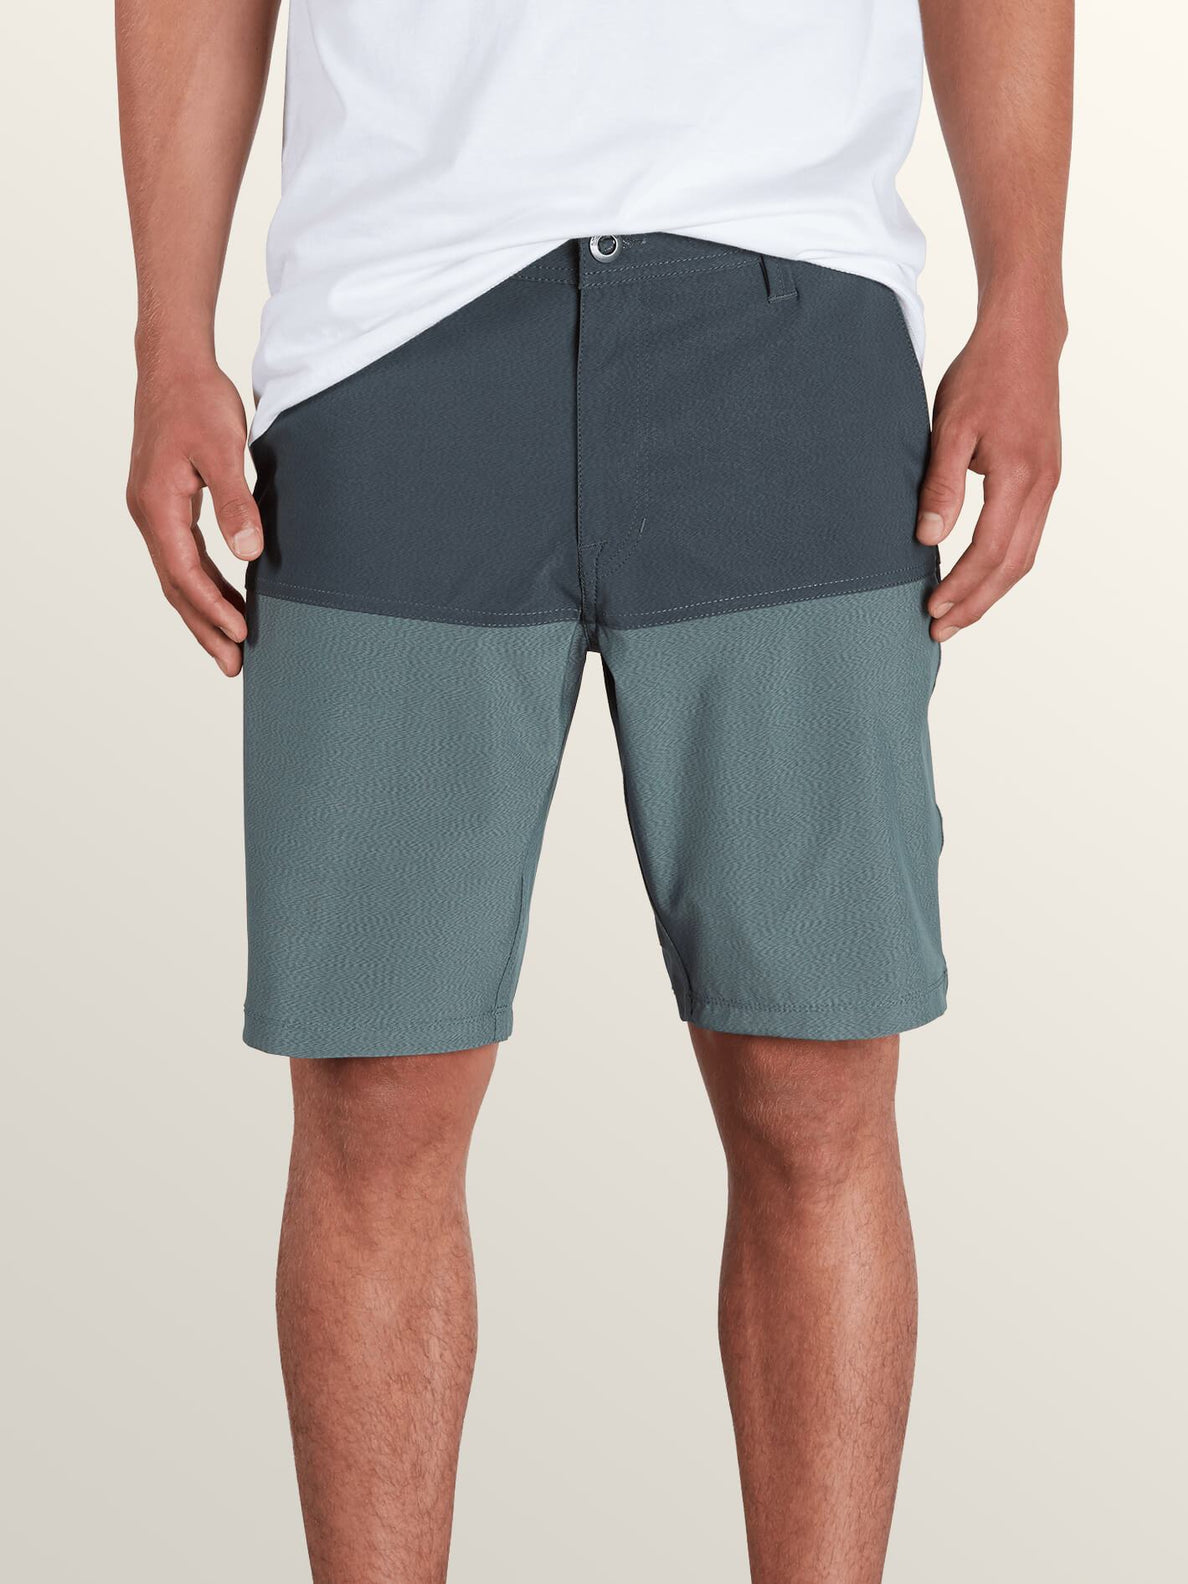 Surf 'N Turf Hybrid Block Hybrid Shorts In Lead, Front View